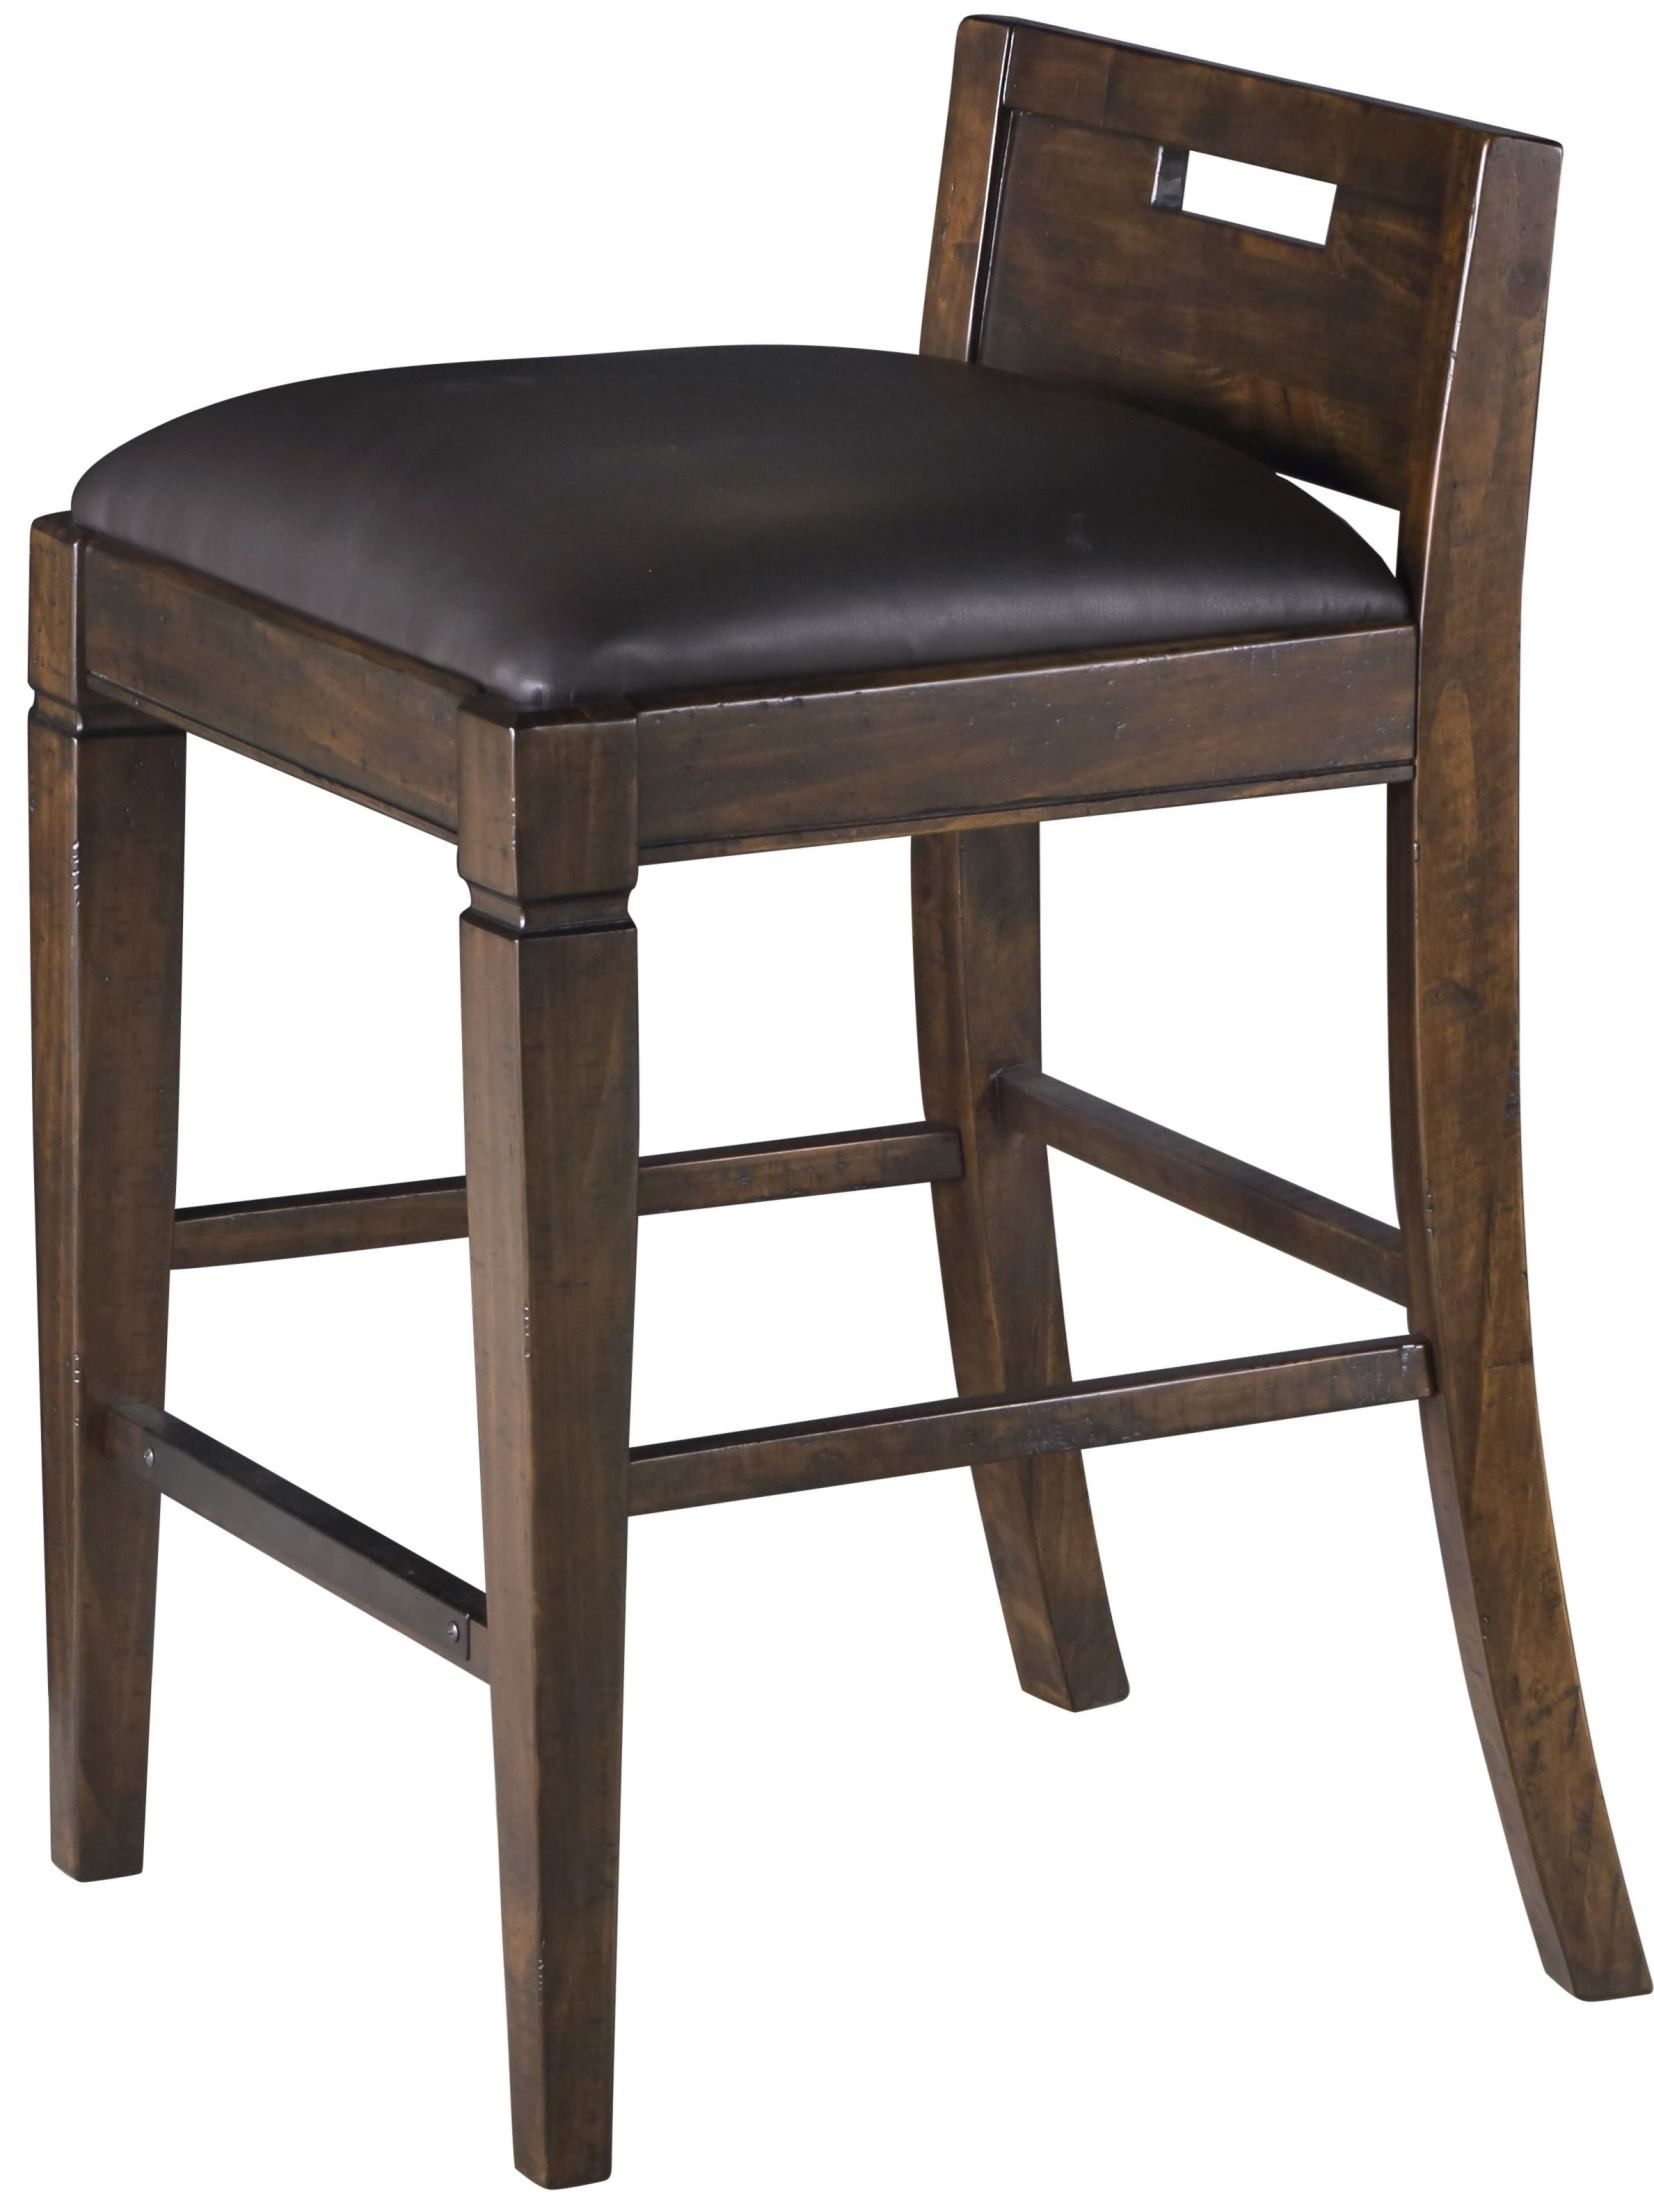 Counter Height Office Chair Pine Hill Rustic Pine Upholstered Counter Height Chair